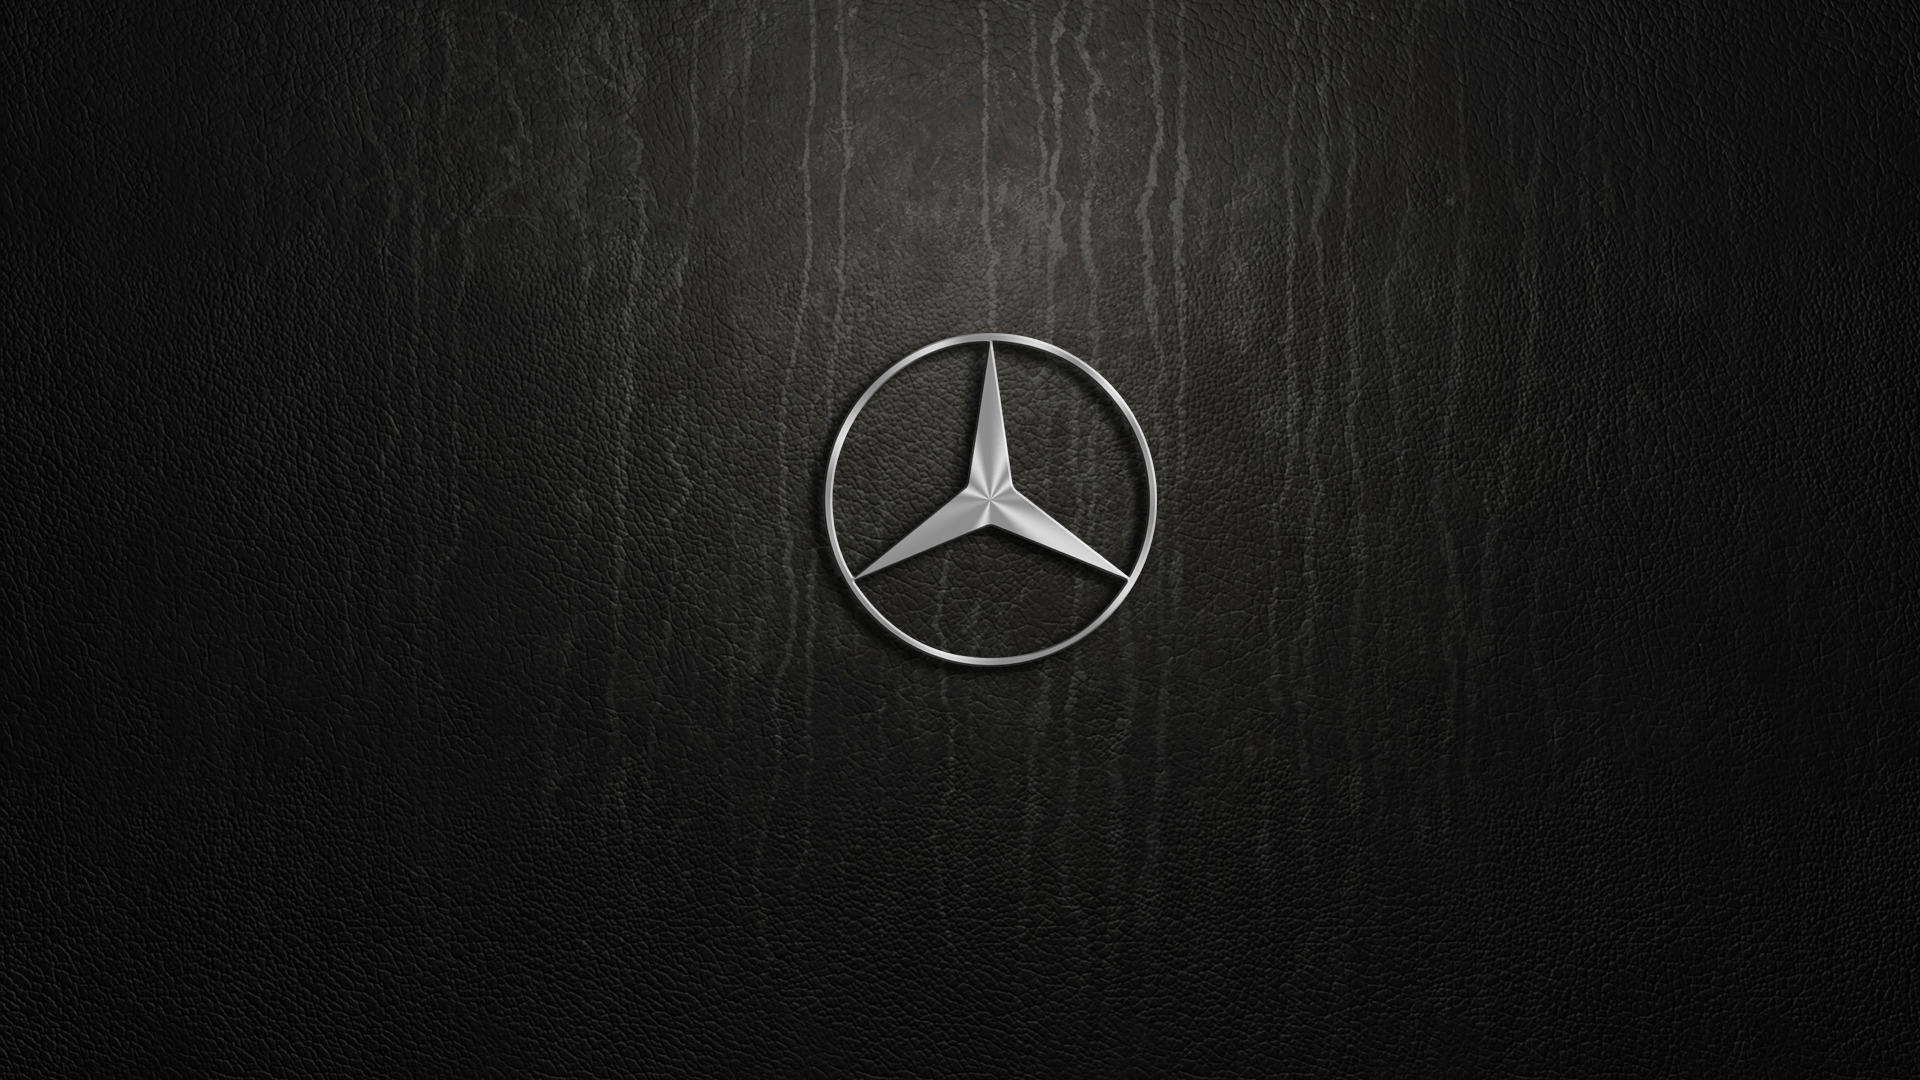 Mercedes benz wallpapers wallpaper cave mercedes benz logo wallpapers voltagebd Images